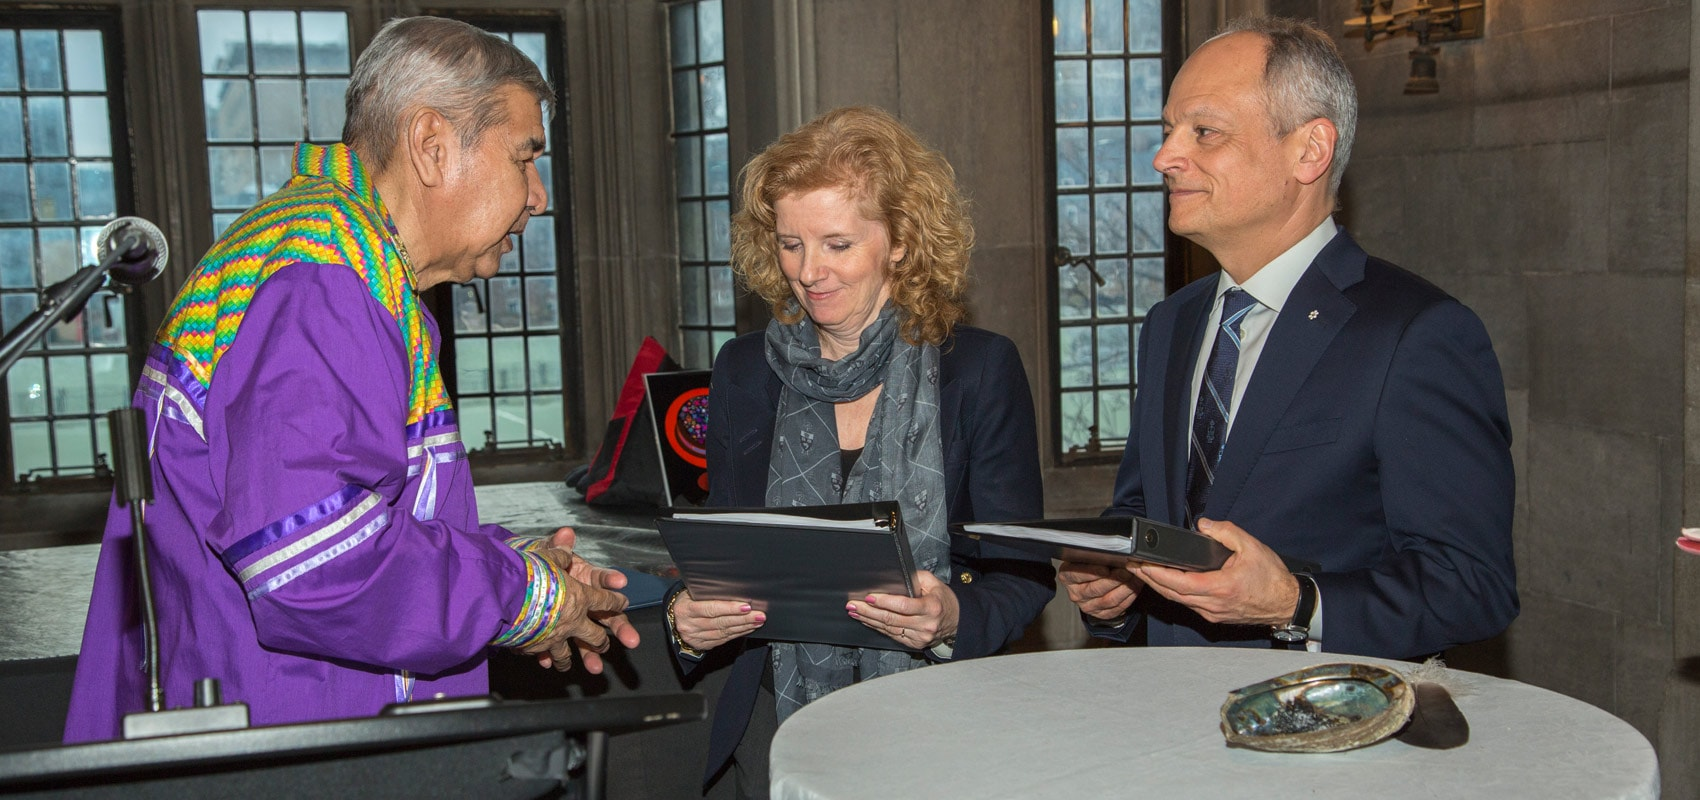 Elder Andrew Wesley (left) presents U of T's Truth and Reconciliation Steering Committee's final report to Provost Cheryl Regehr (centre) and President Meric Gertler (right) at Hart House Jan. 13 (photo by Johnny Guatto)